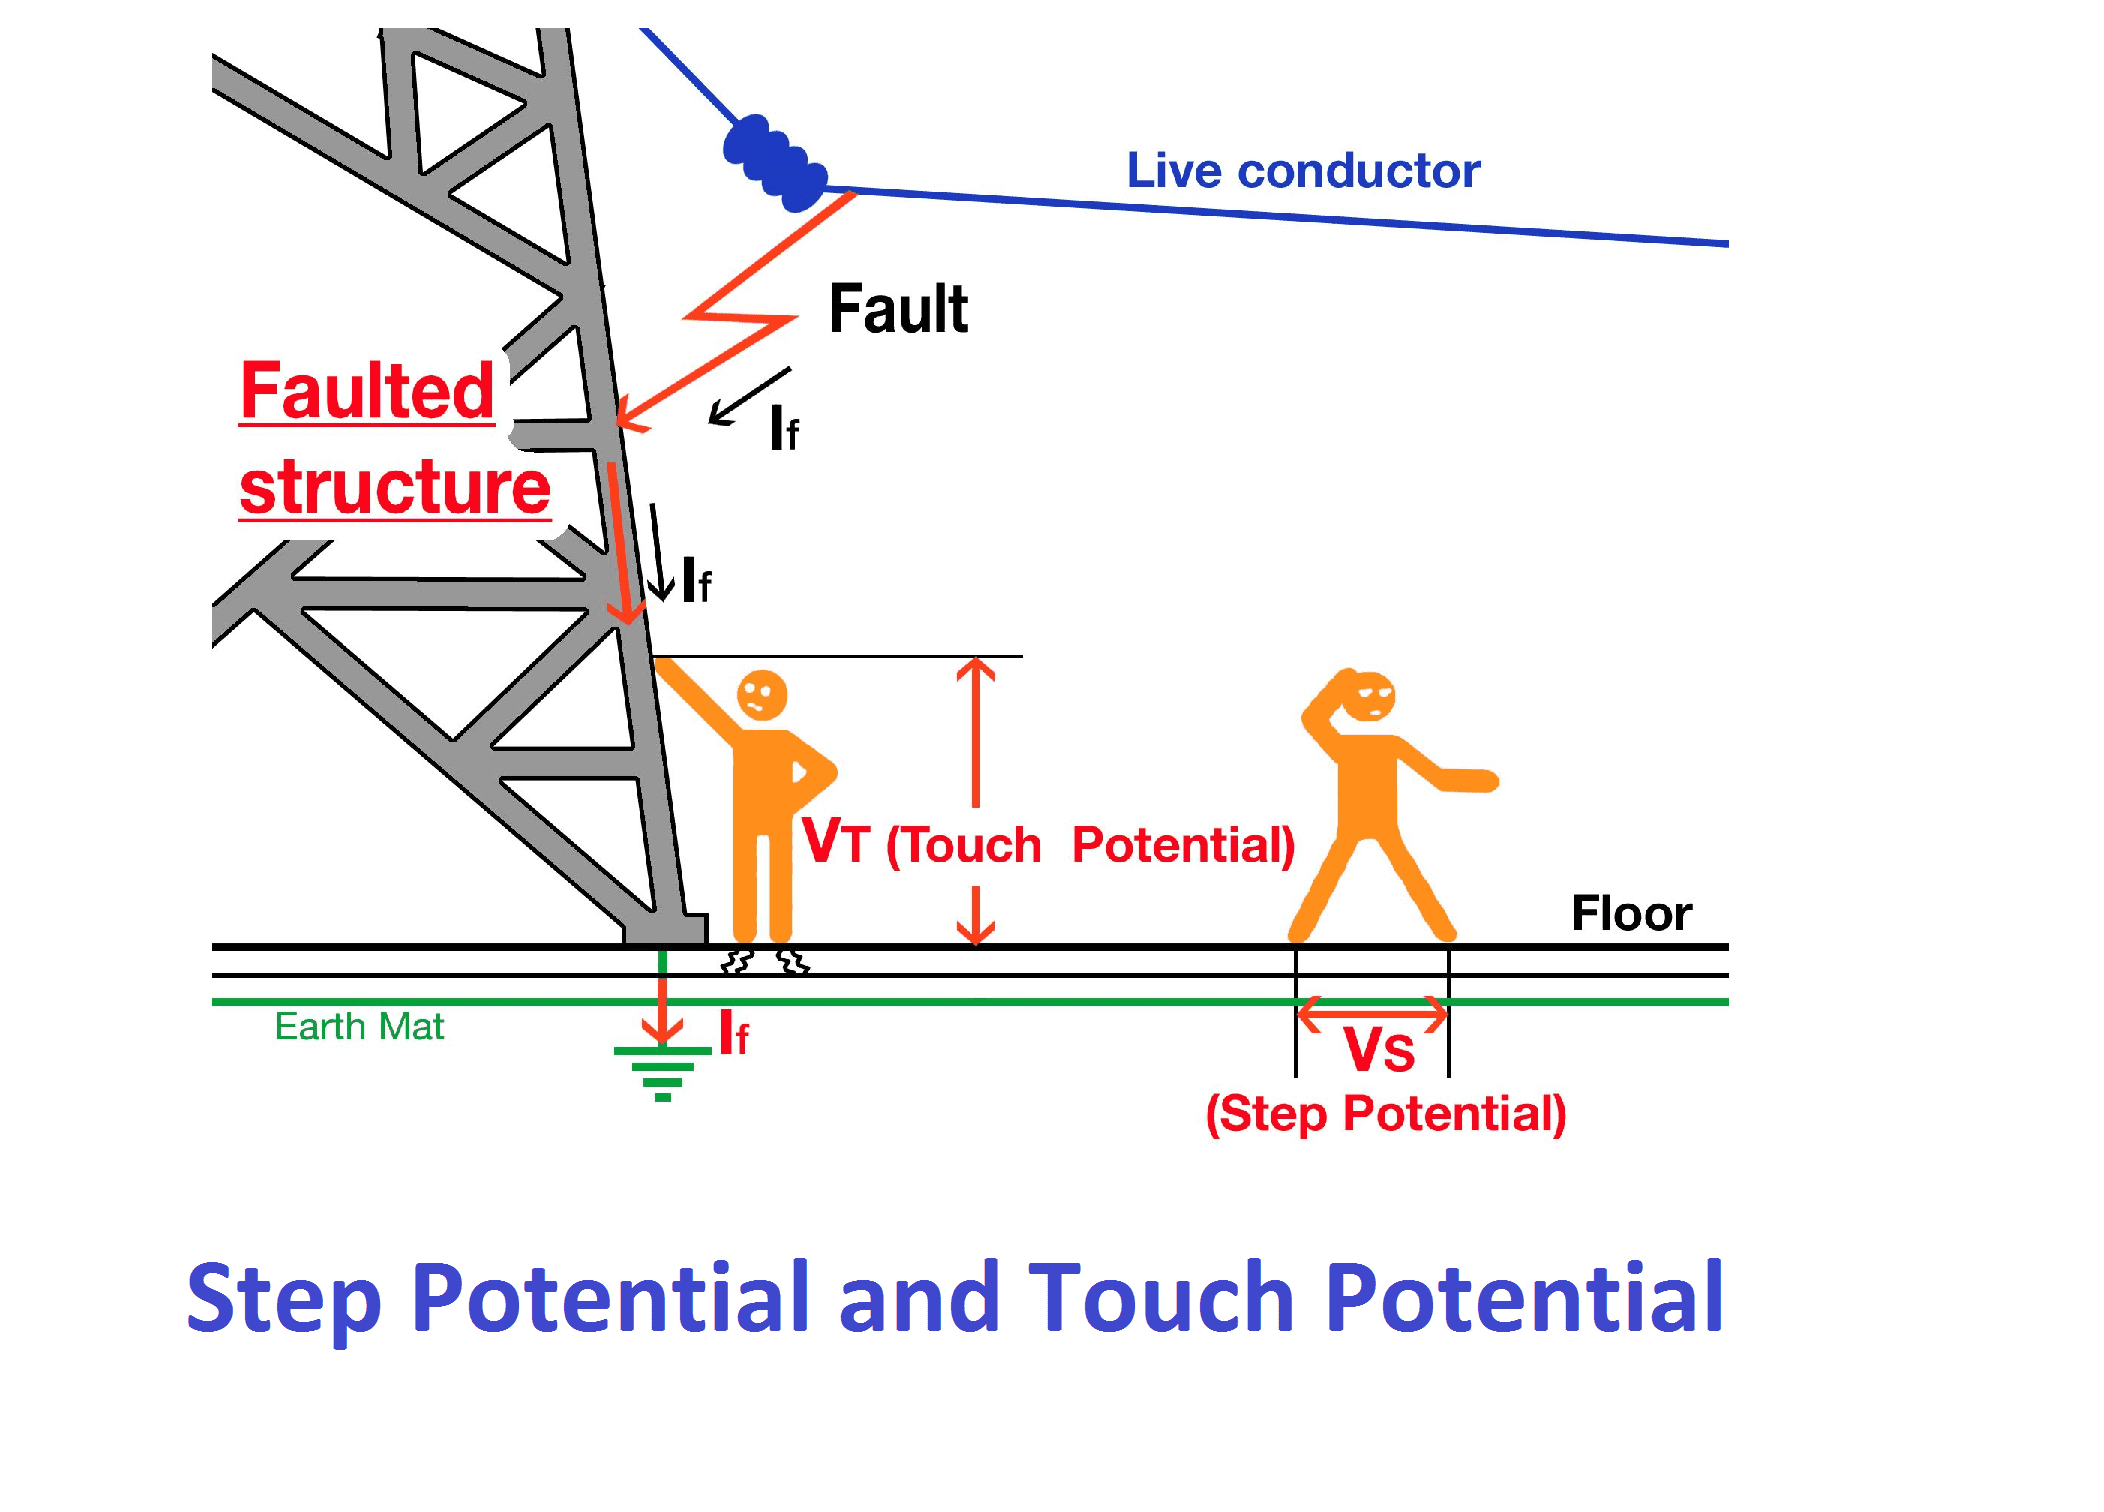 Step potential and touch potential